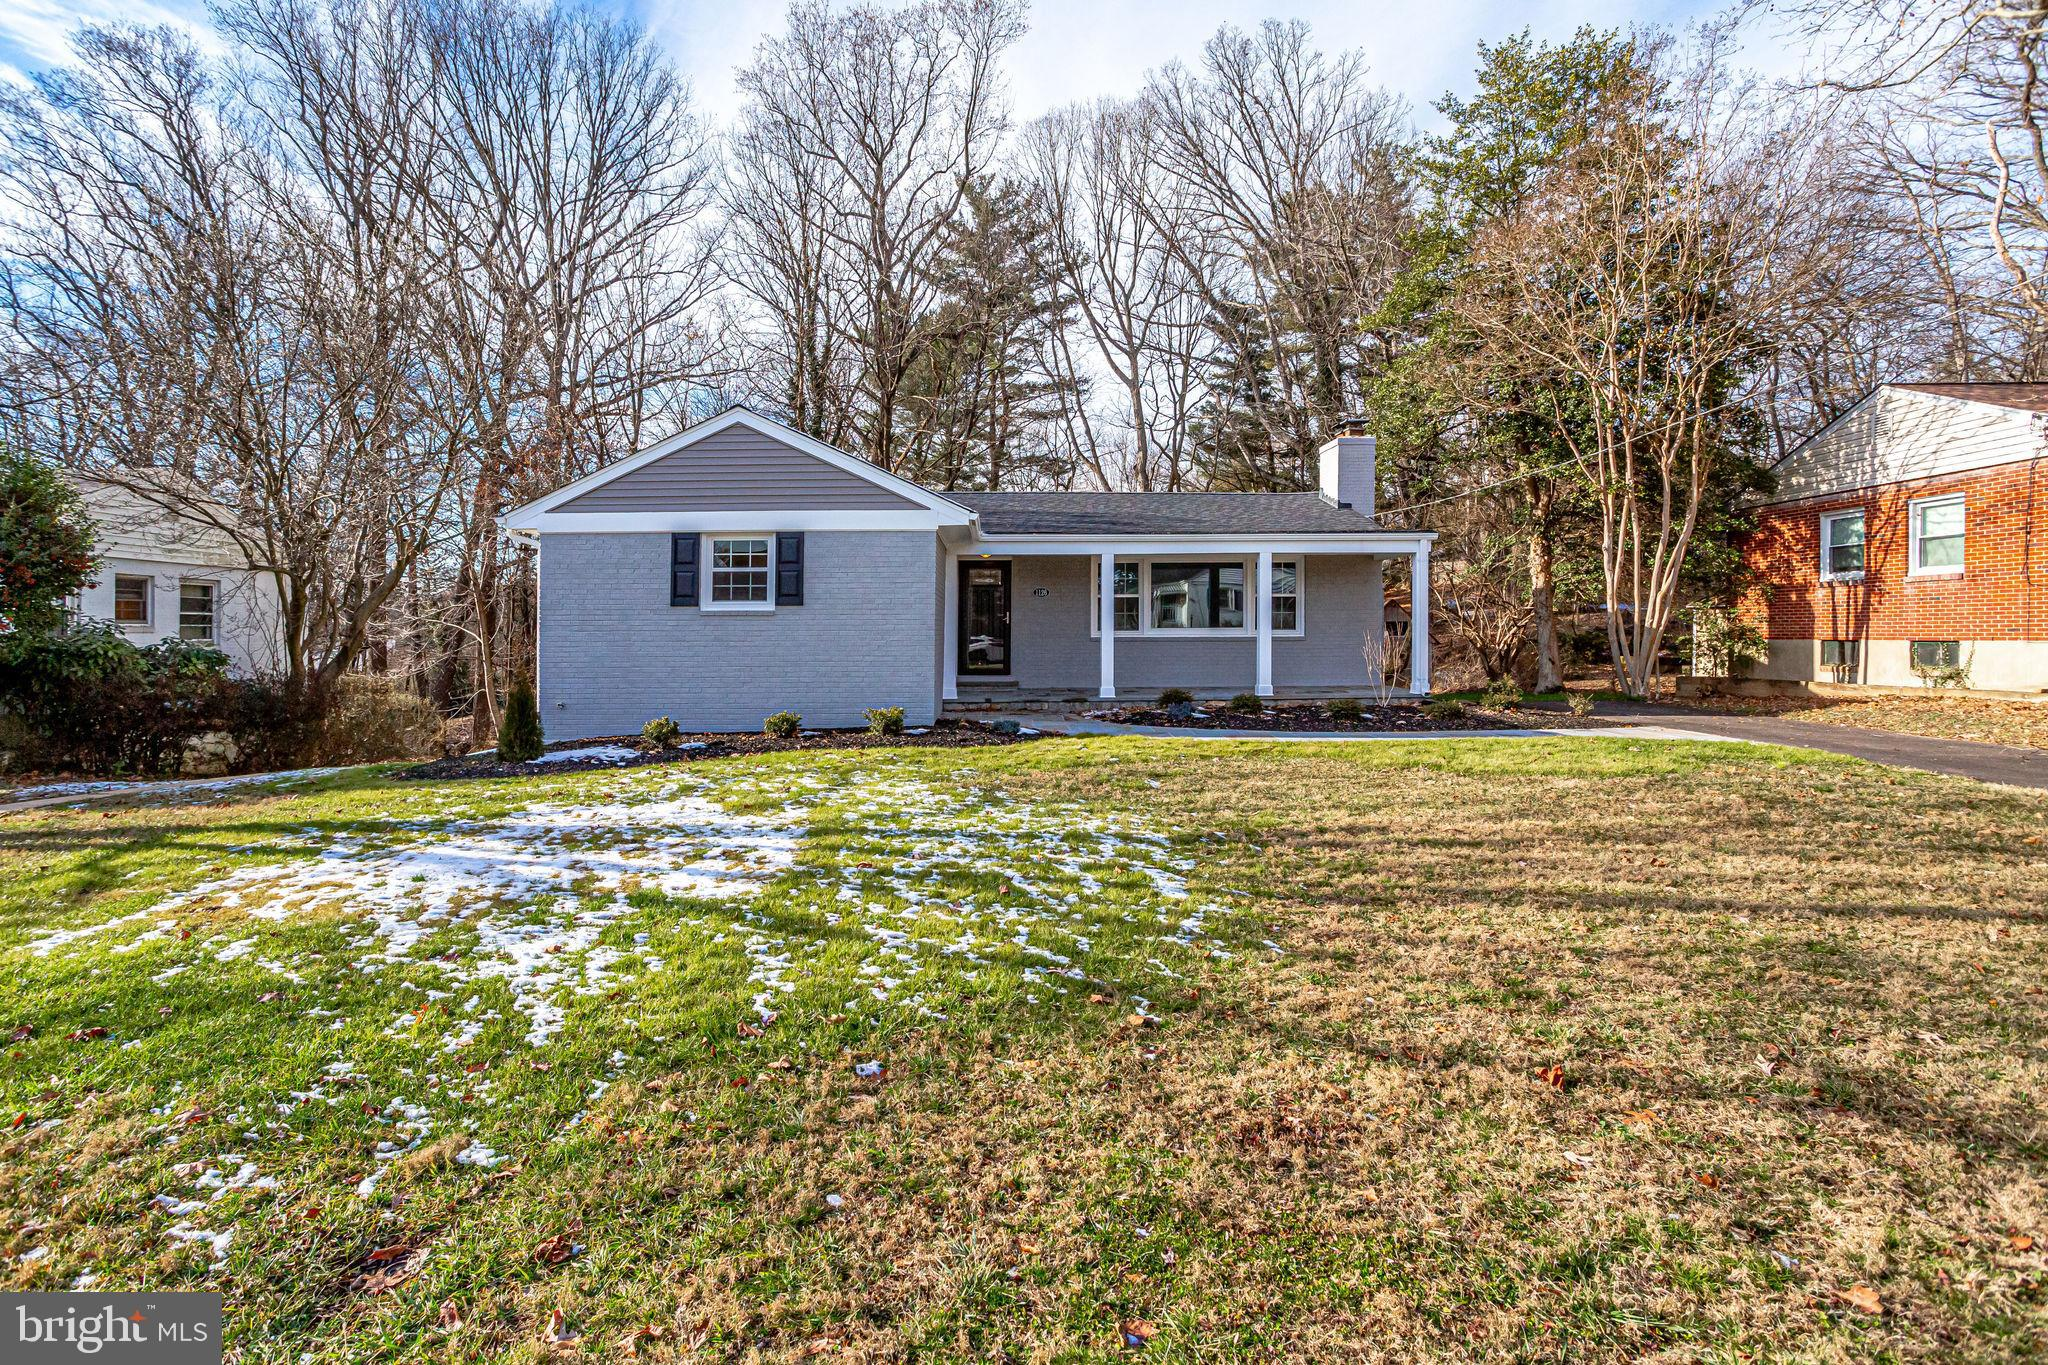 1126 W NOLCREST DRIVE, SILVER SPRING, MD 20903